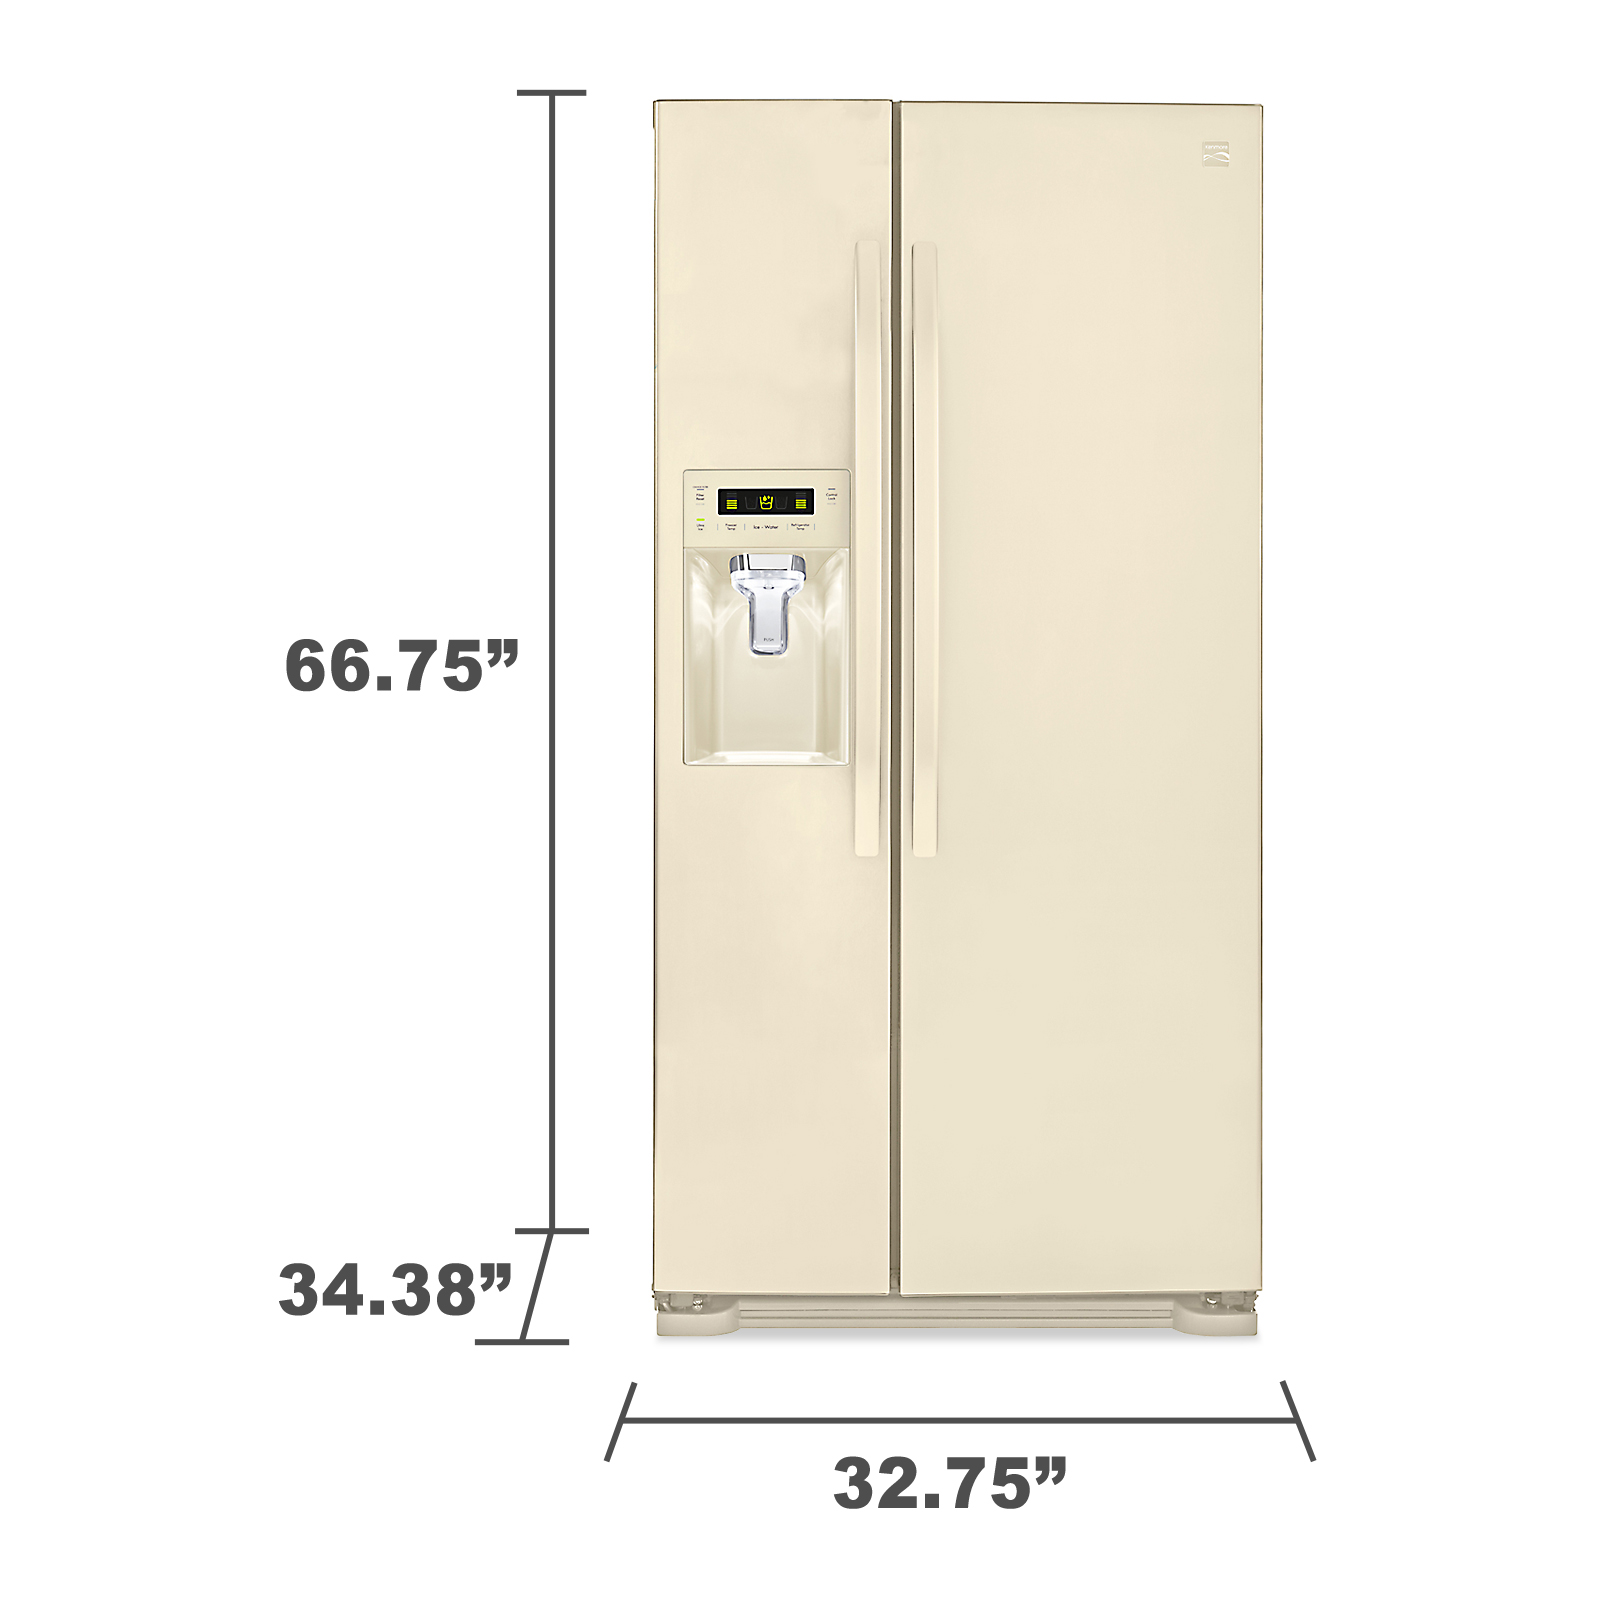 Kenmore 51814 21.9 cu. ft. Side-by-Side Refrigerator w/ Dispenser - Bisque